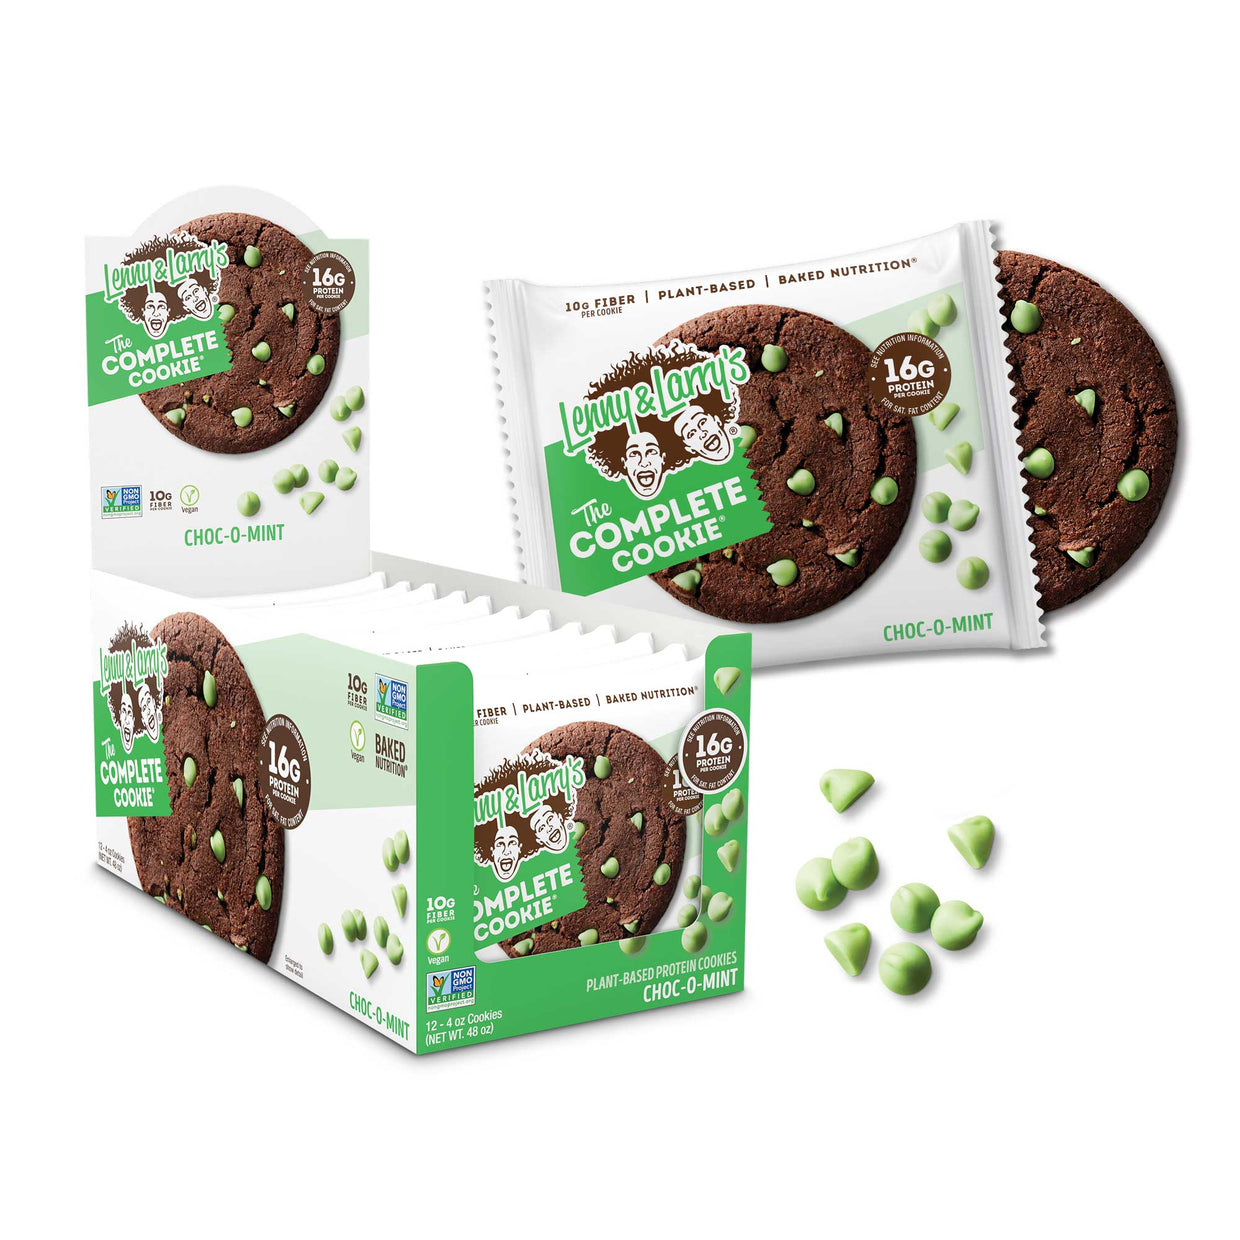 Choc-O-Mint - 4oz - Box of 12